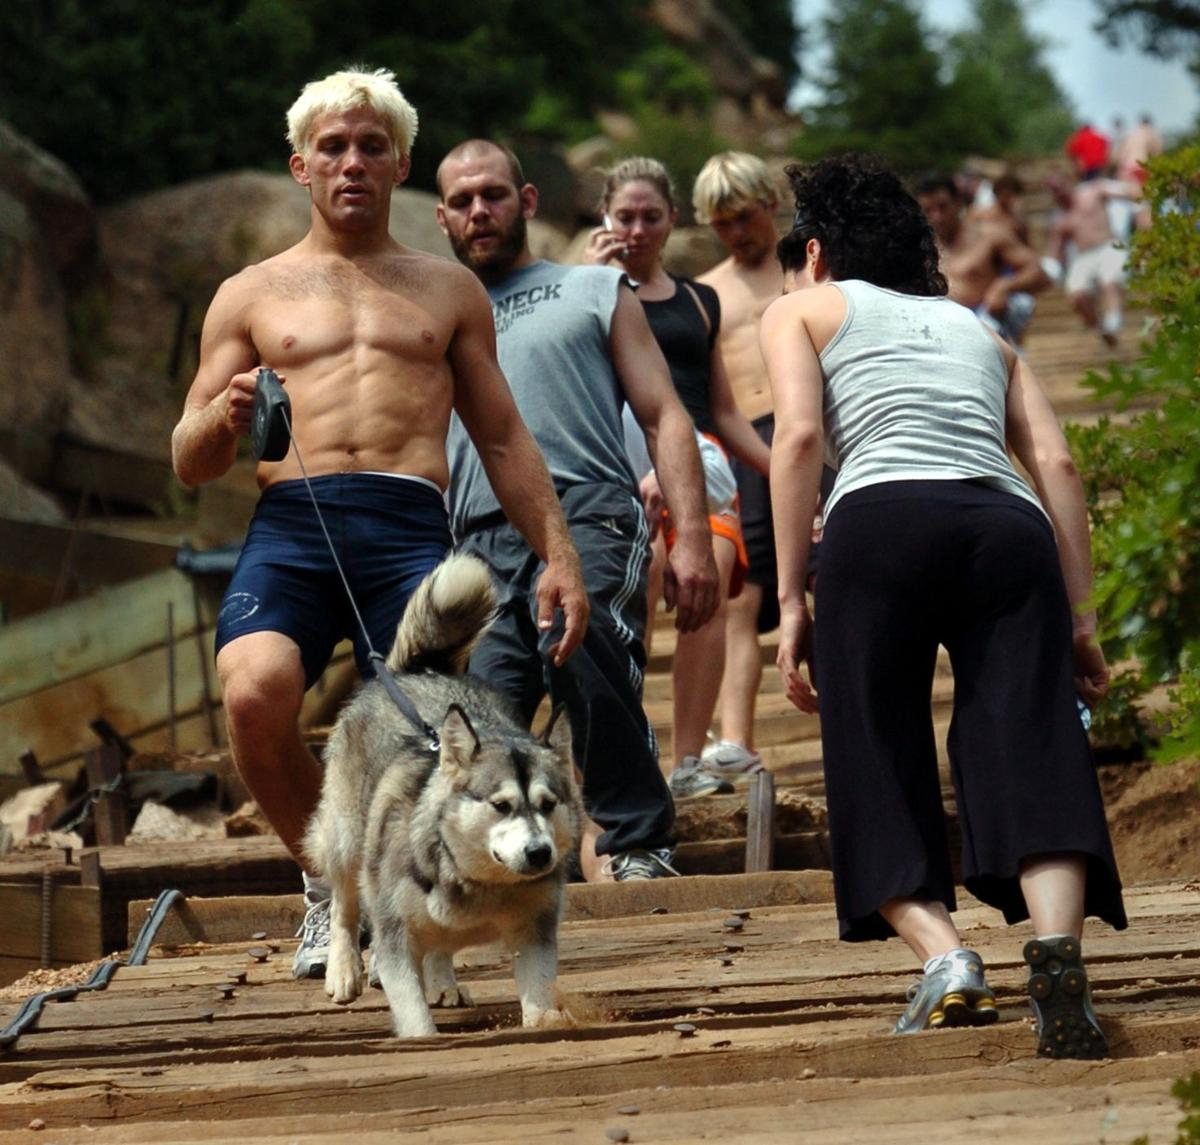 Hikers climb up and down the Incline Trail above Manitou Springs, Colo., Saturday, Sept. 10, 2005 on a busy weekend morning. Photo by Christian Murdock/The Gazette